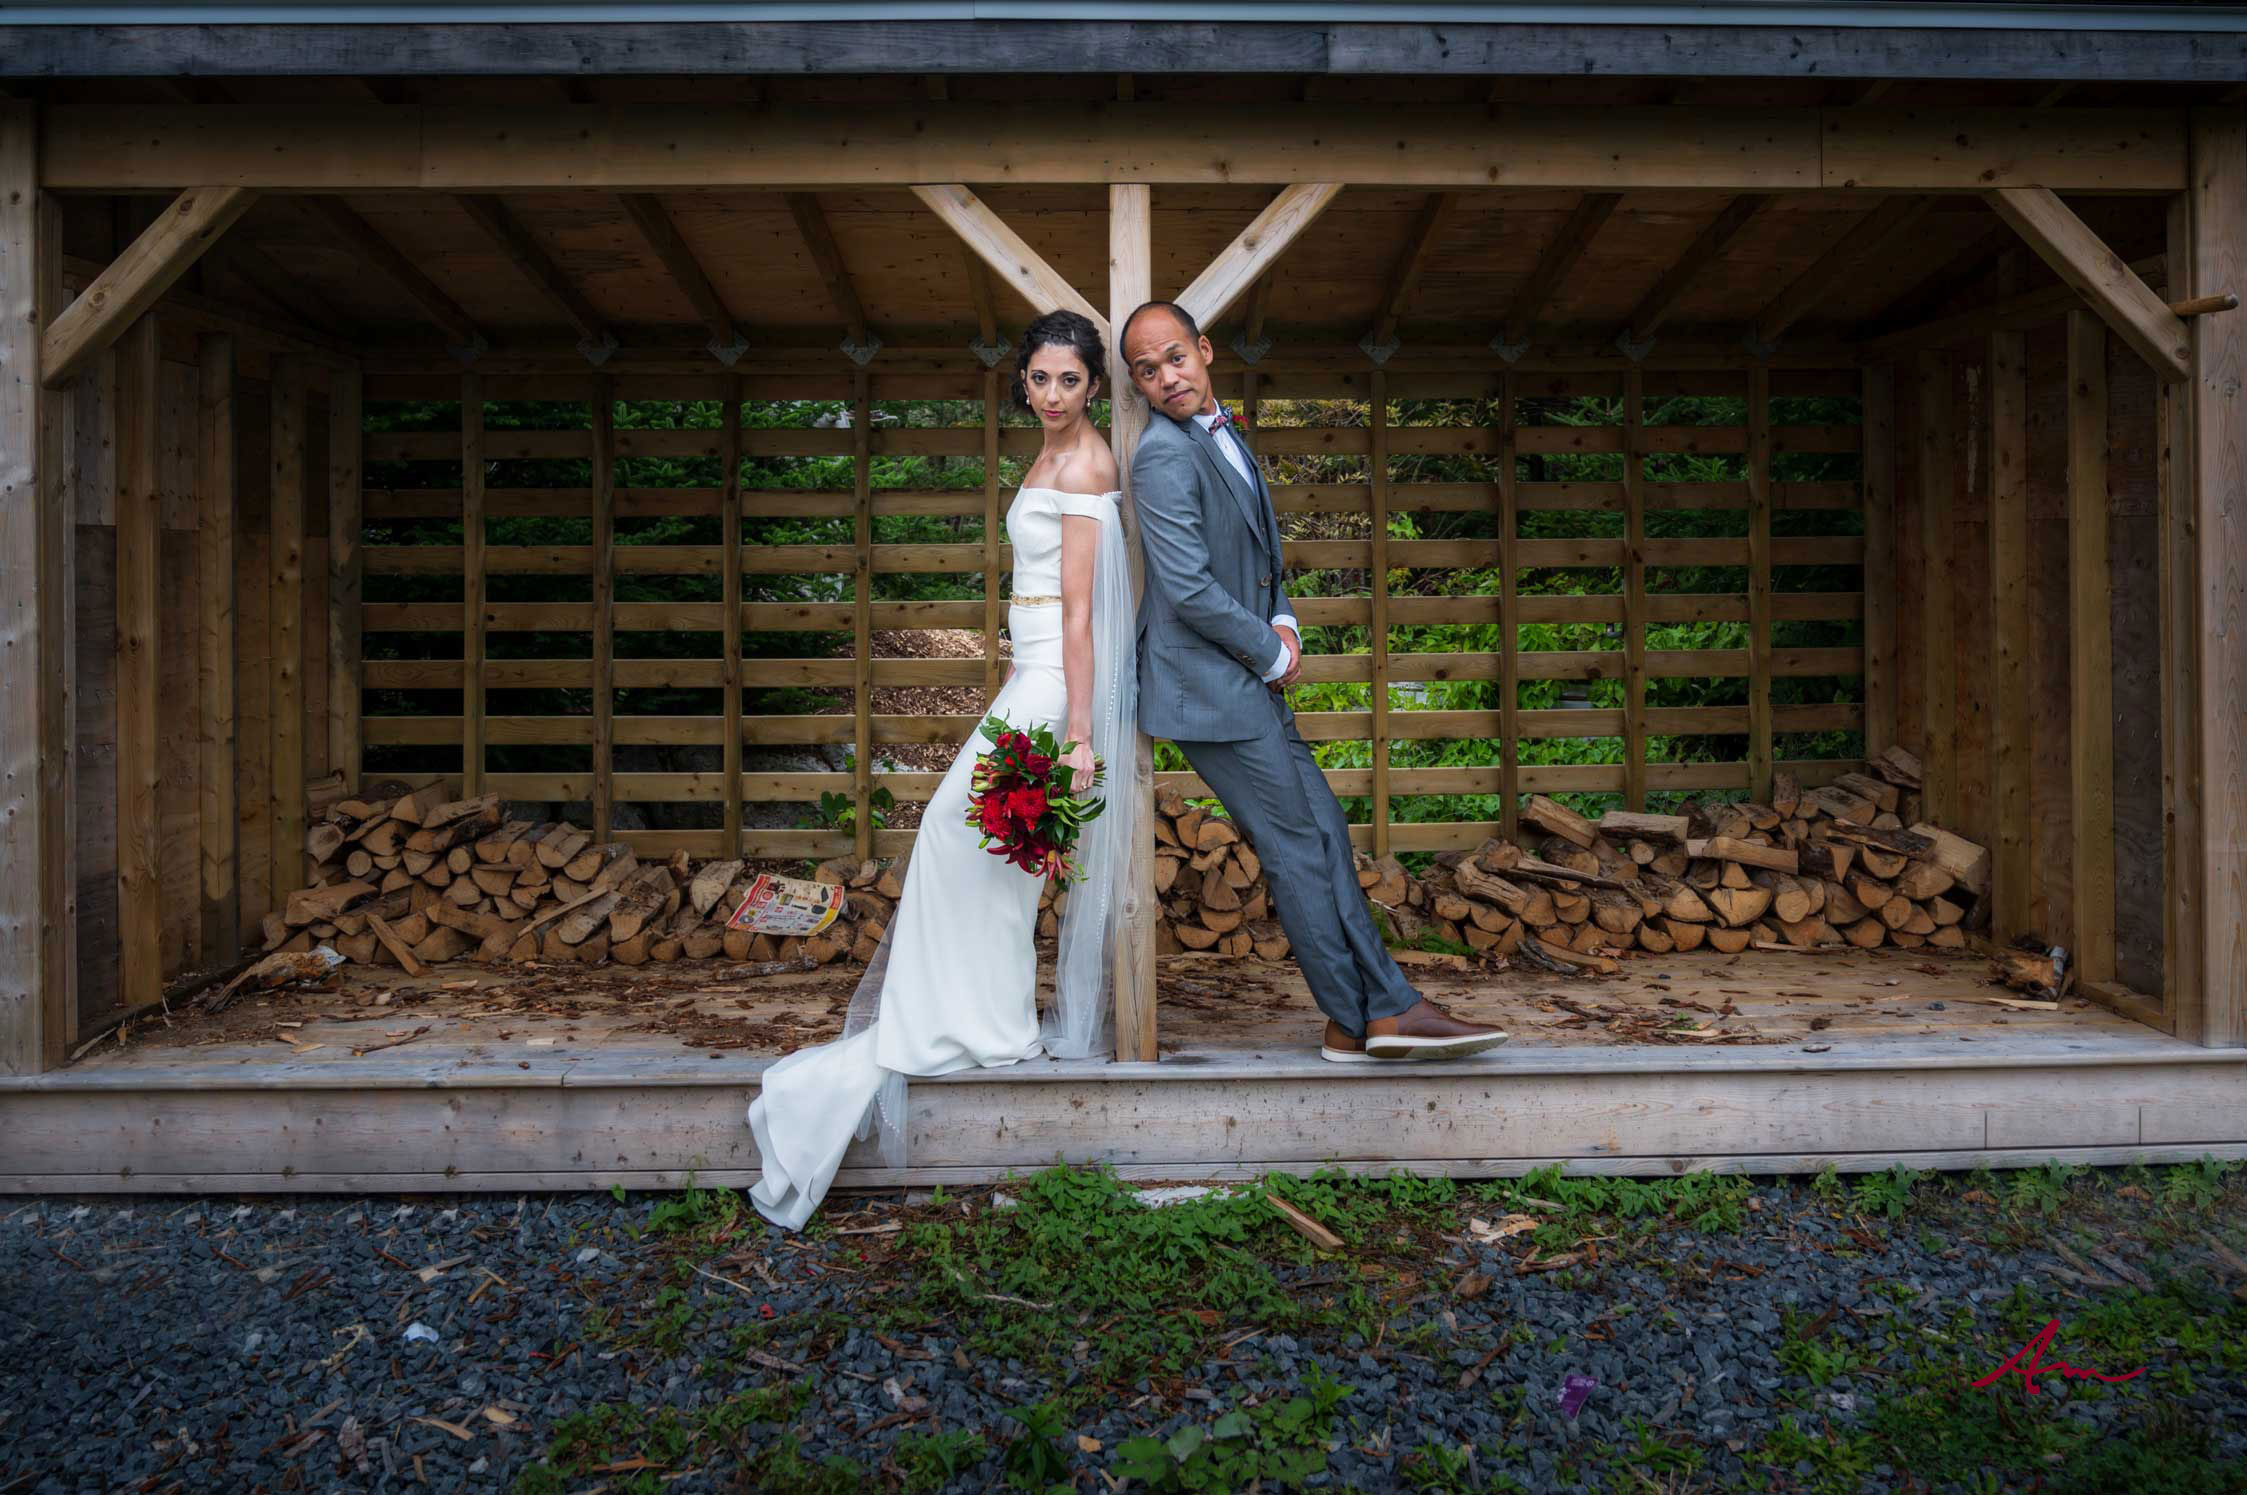 Lots of fun spots for pictures at Oceanstone - including the wood shed.